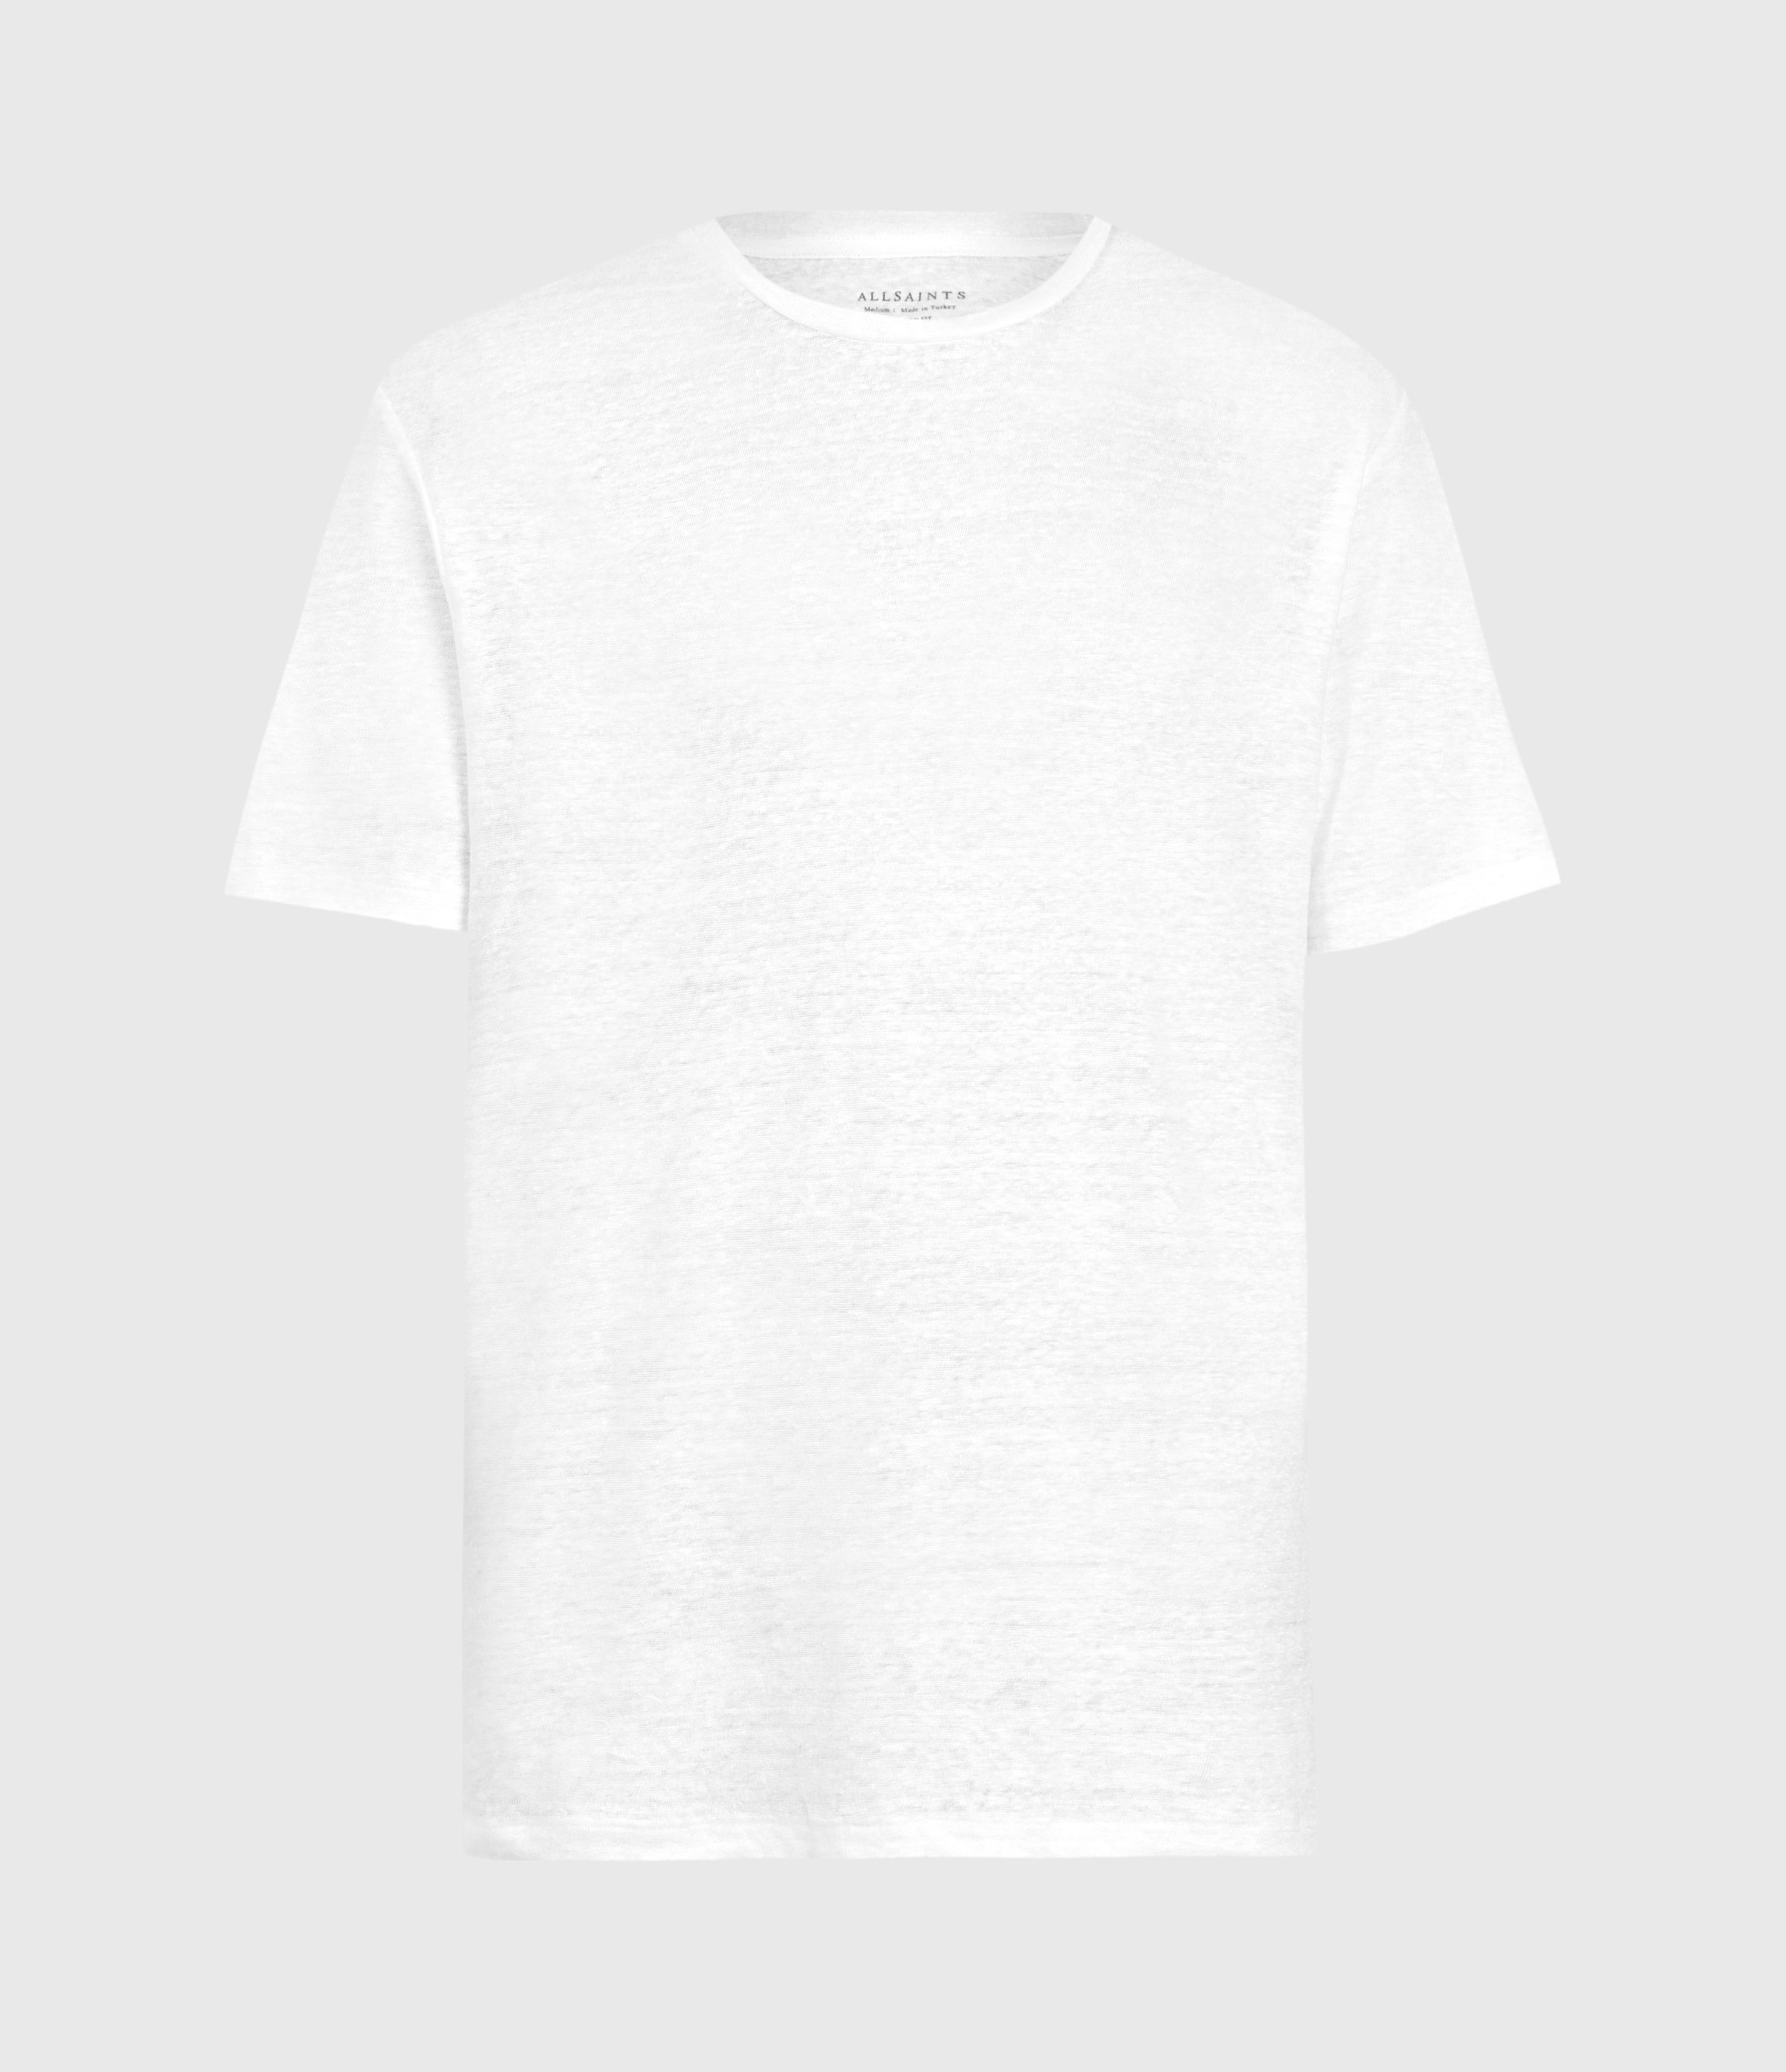 AllSaints Mens Avery Crew T-Shirt, Optic White, Size: L